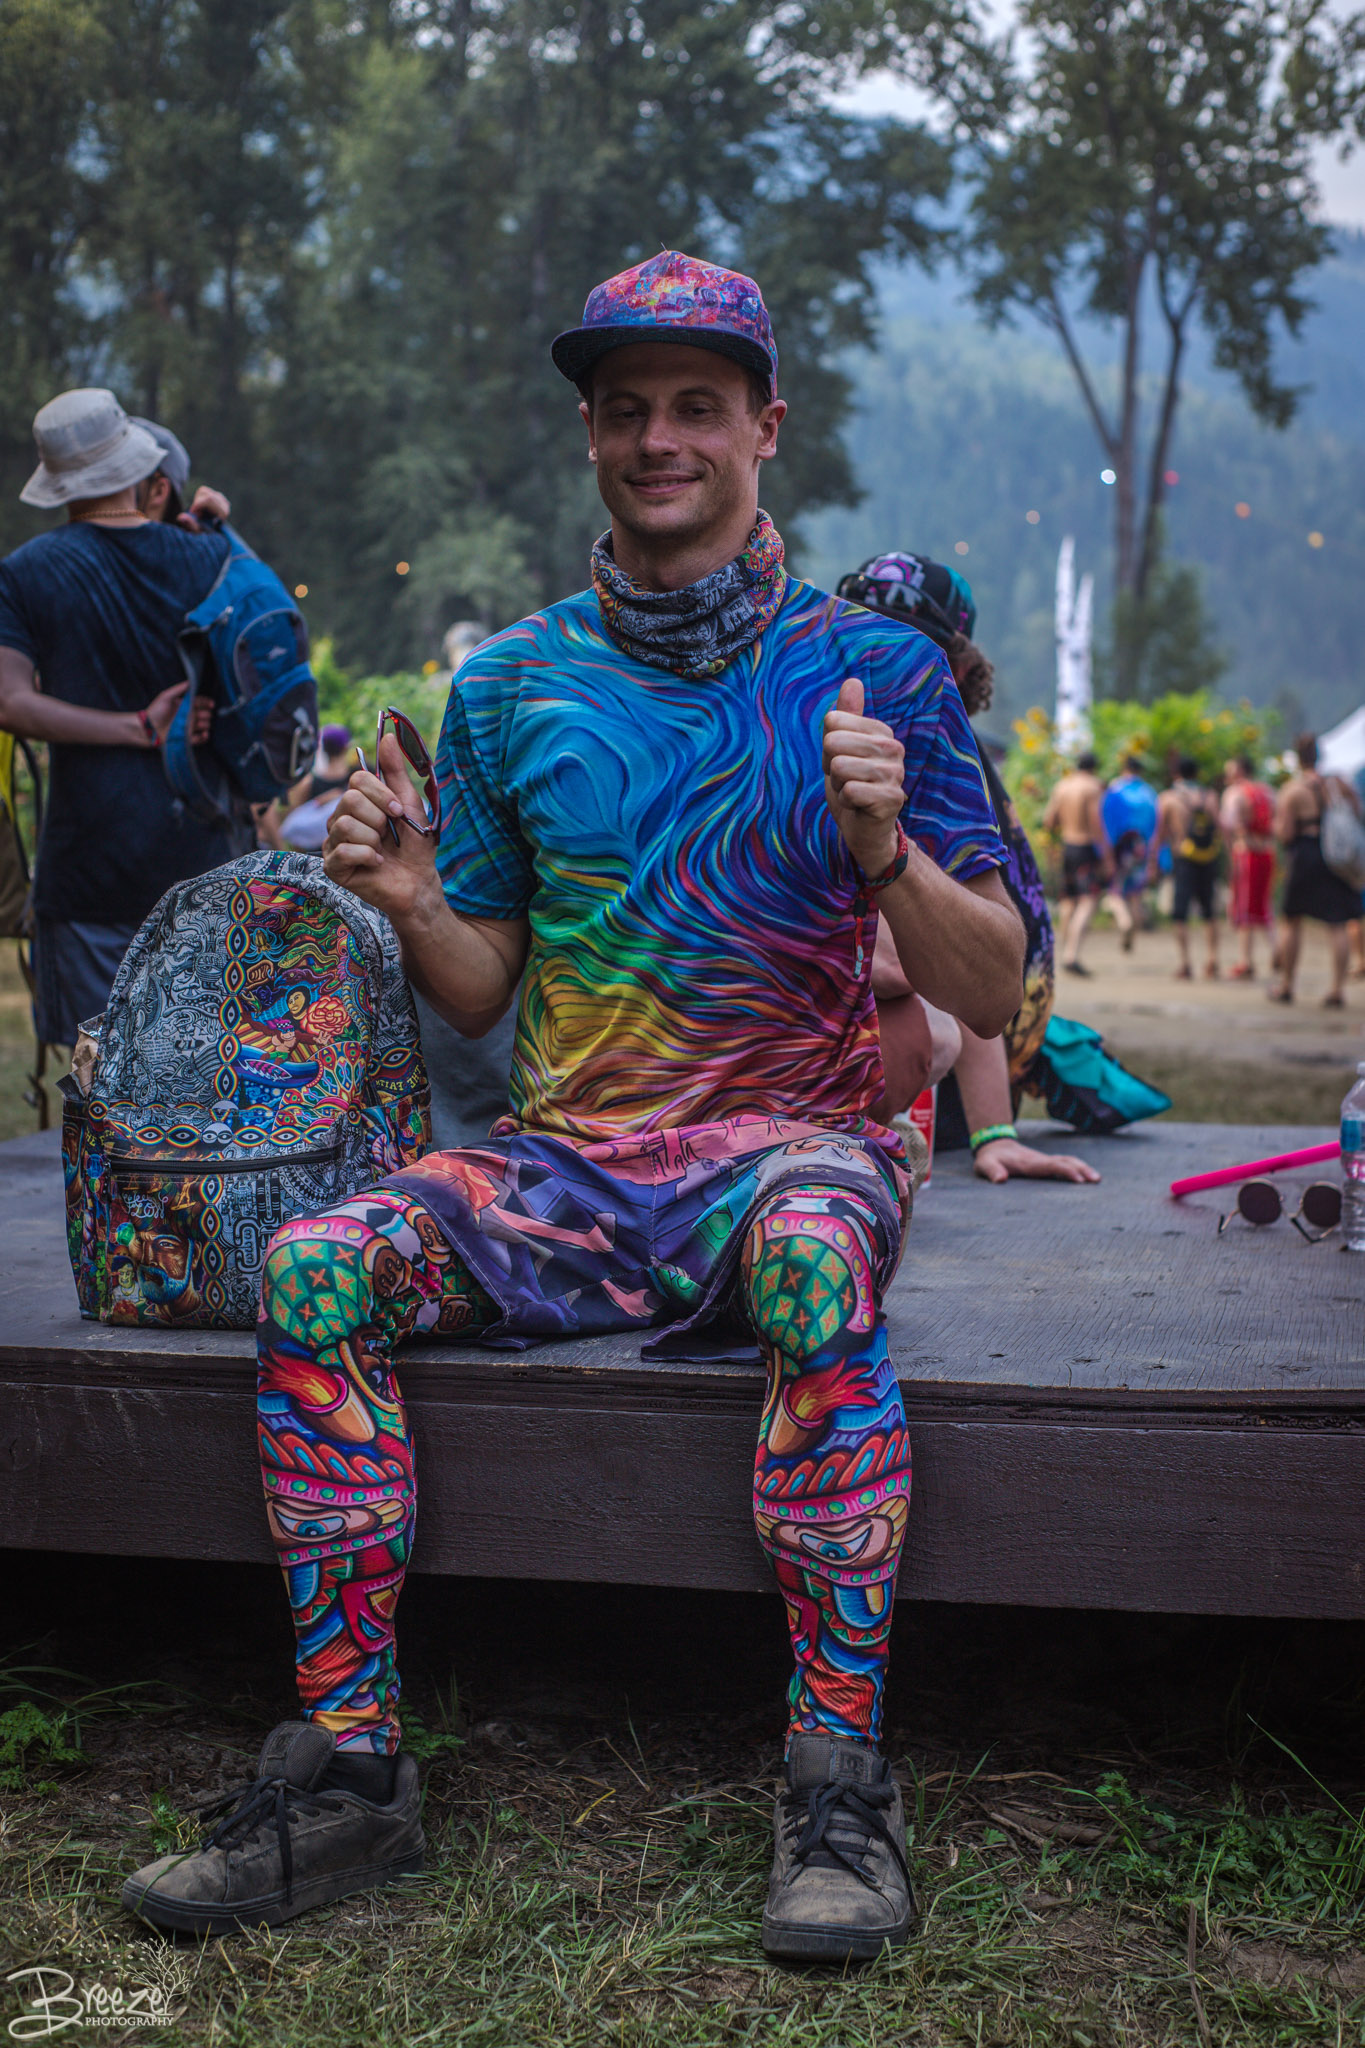 Brie'Ana Breeze Photography & Media - Shambhala 2018-0552.jpg